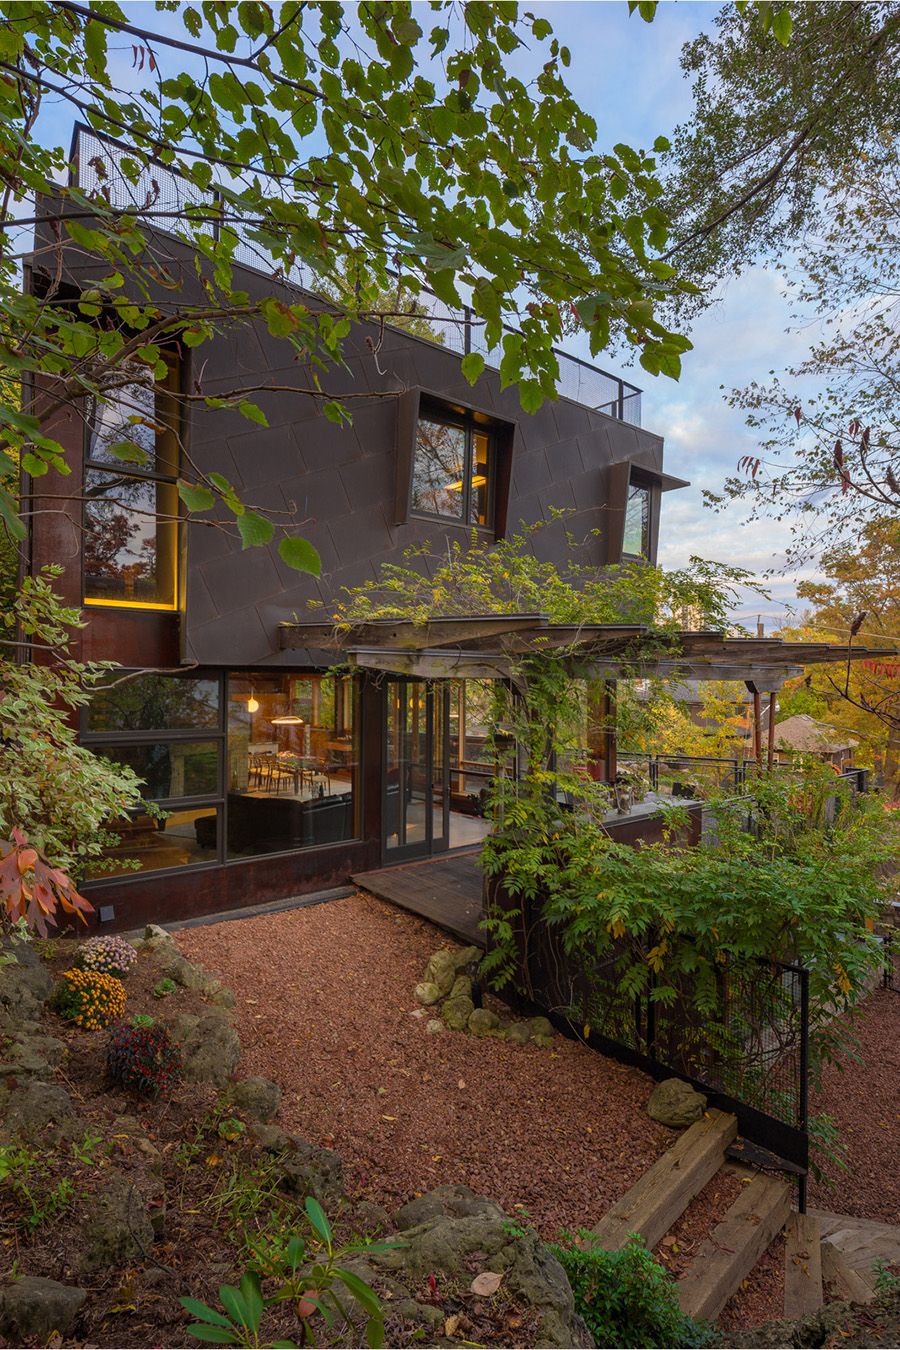 Modern home with Corten steel siding integrated into surroundings